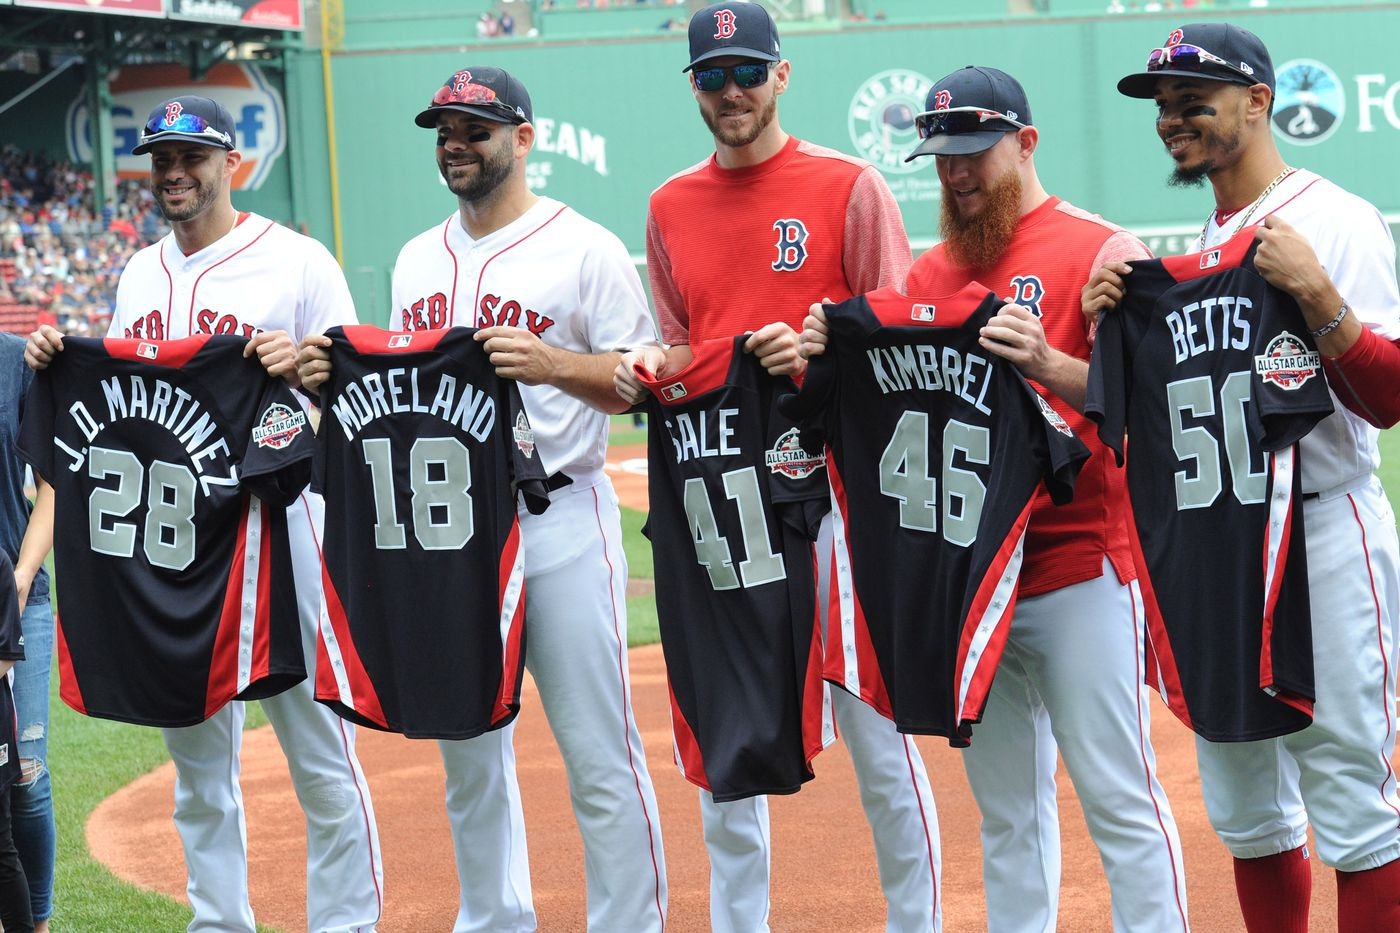 brand new b643f 4cd23 Red Sox History: The strangest All-Stars - Over the Monster